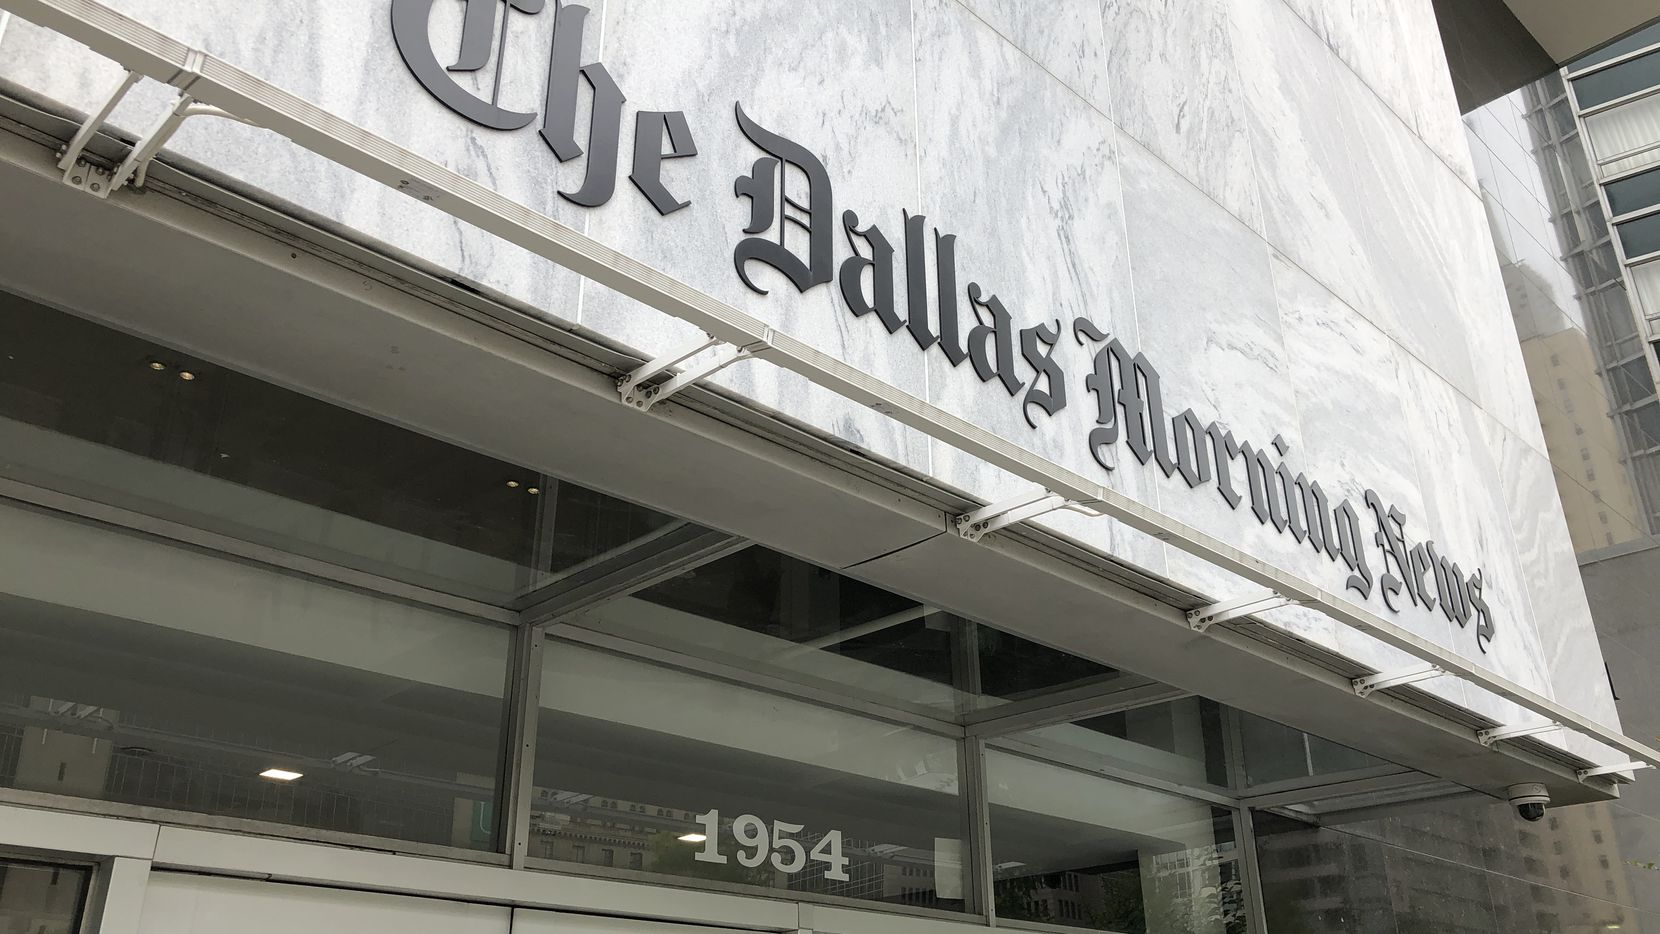 The Dallas Morning News' headquarters at 1954 Commerce St. in downtown Dallas.